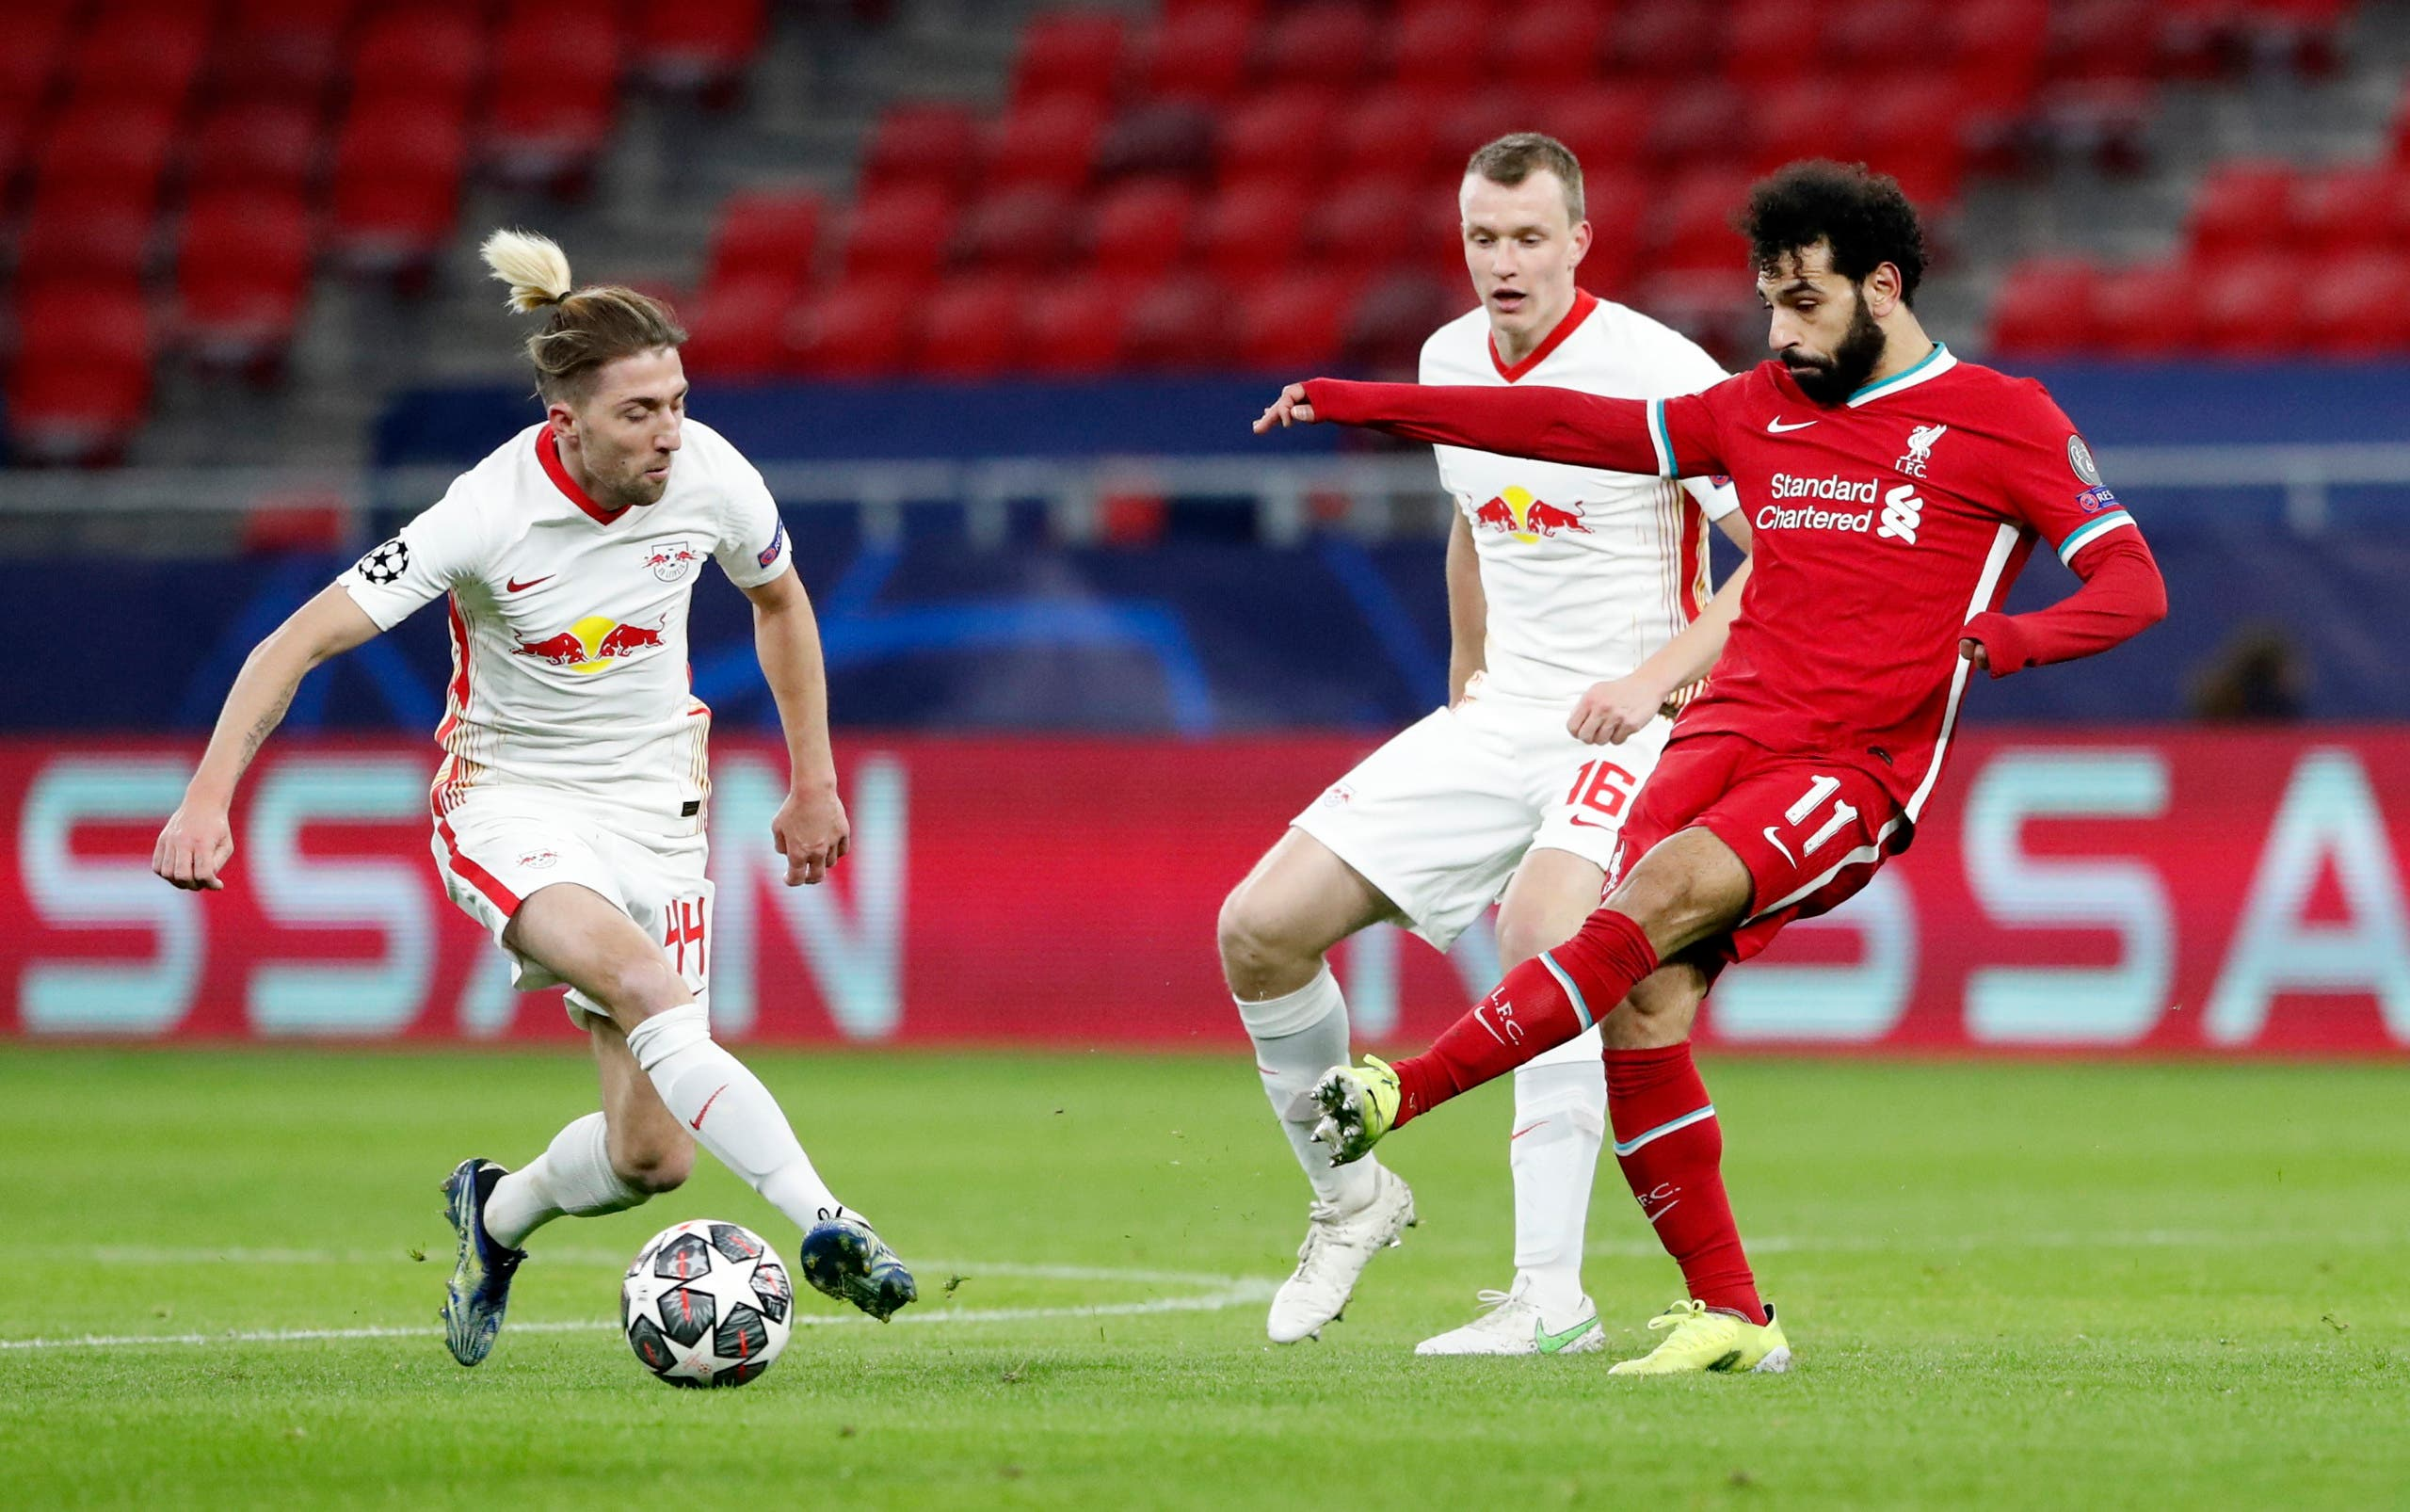 Liverpool's Mohamed Salah in action with RB Leipzig's Kevin Kampl. (Reuters)